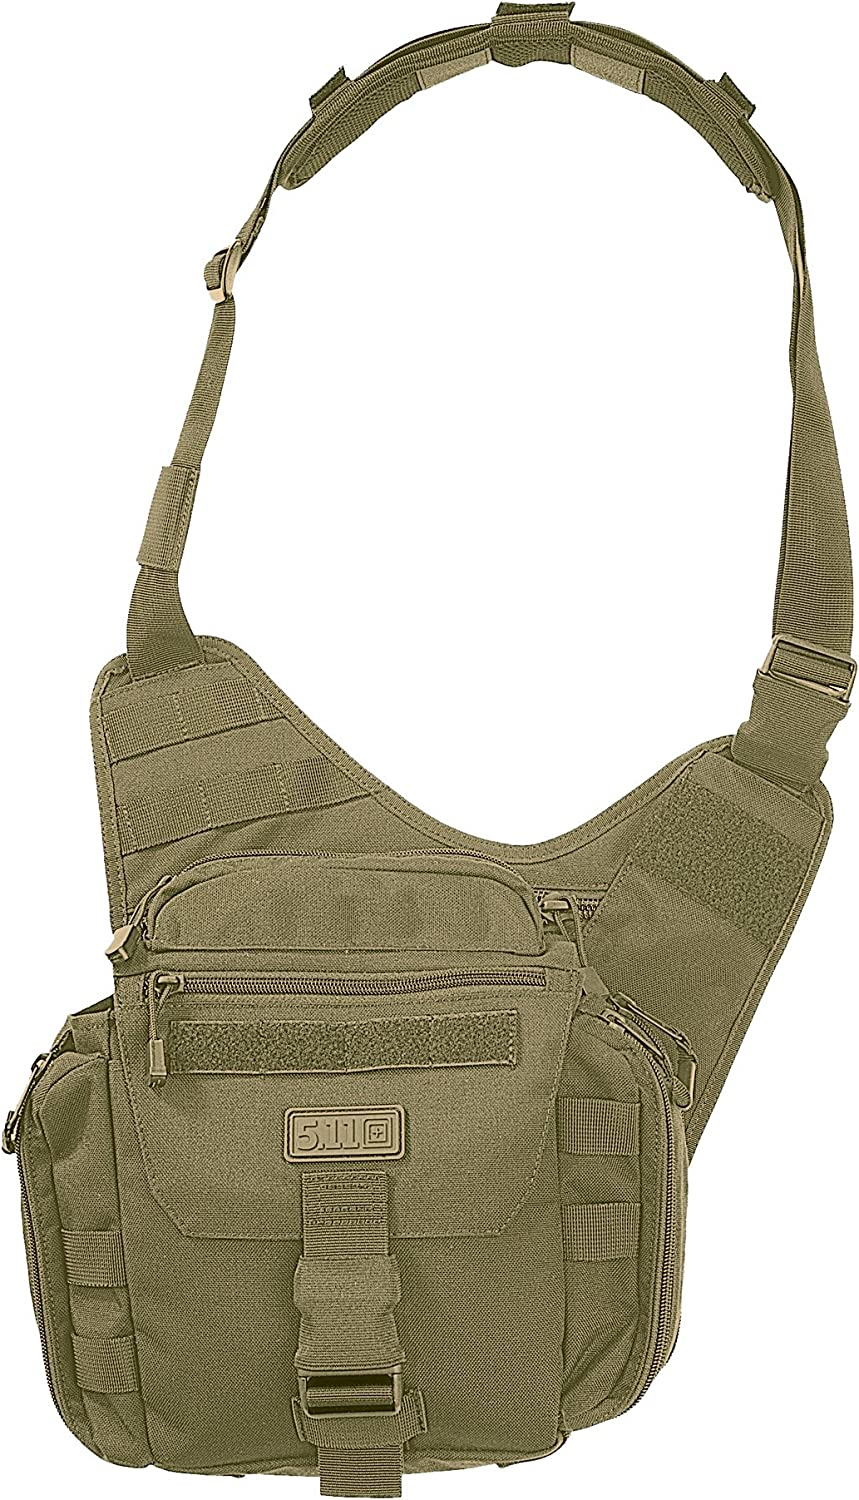 5.11 Tactical PUSH pack - OD Green - OD Green: Amazon.es: Deportes y aire libre